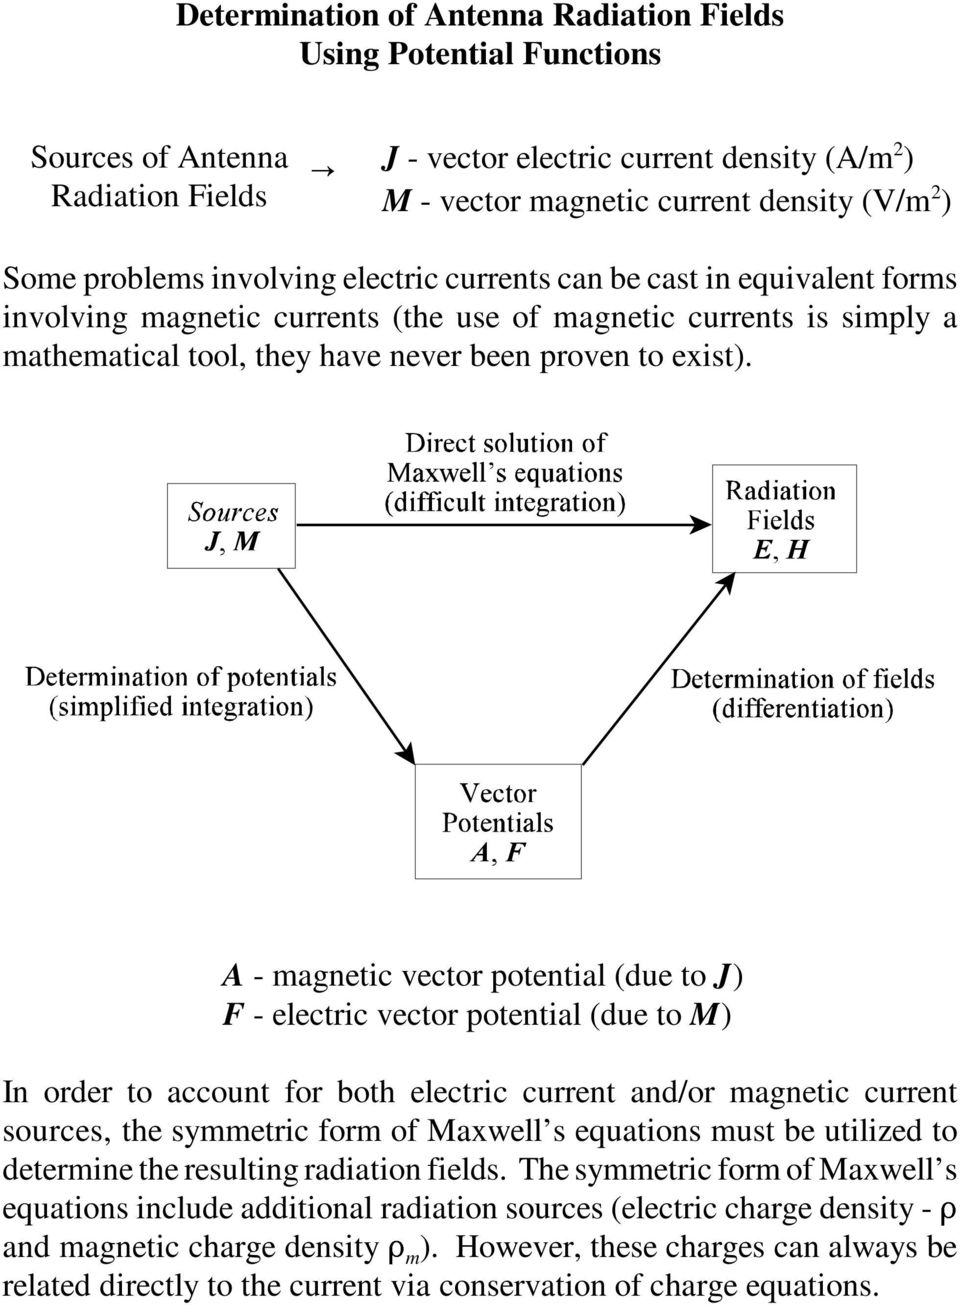 A - magnetic vector potential (due to J) F - electric vector potential (due to M) In order to account for both electric current and/or magnetic current sources, the symmetric form of Maxwell s